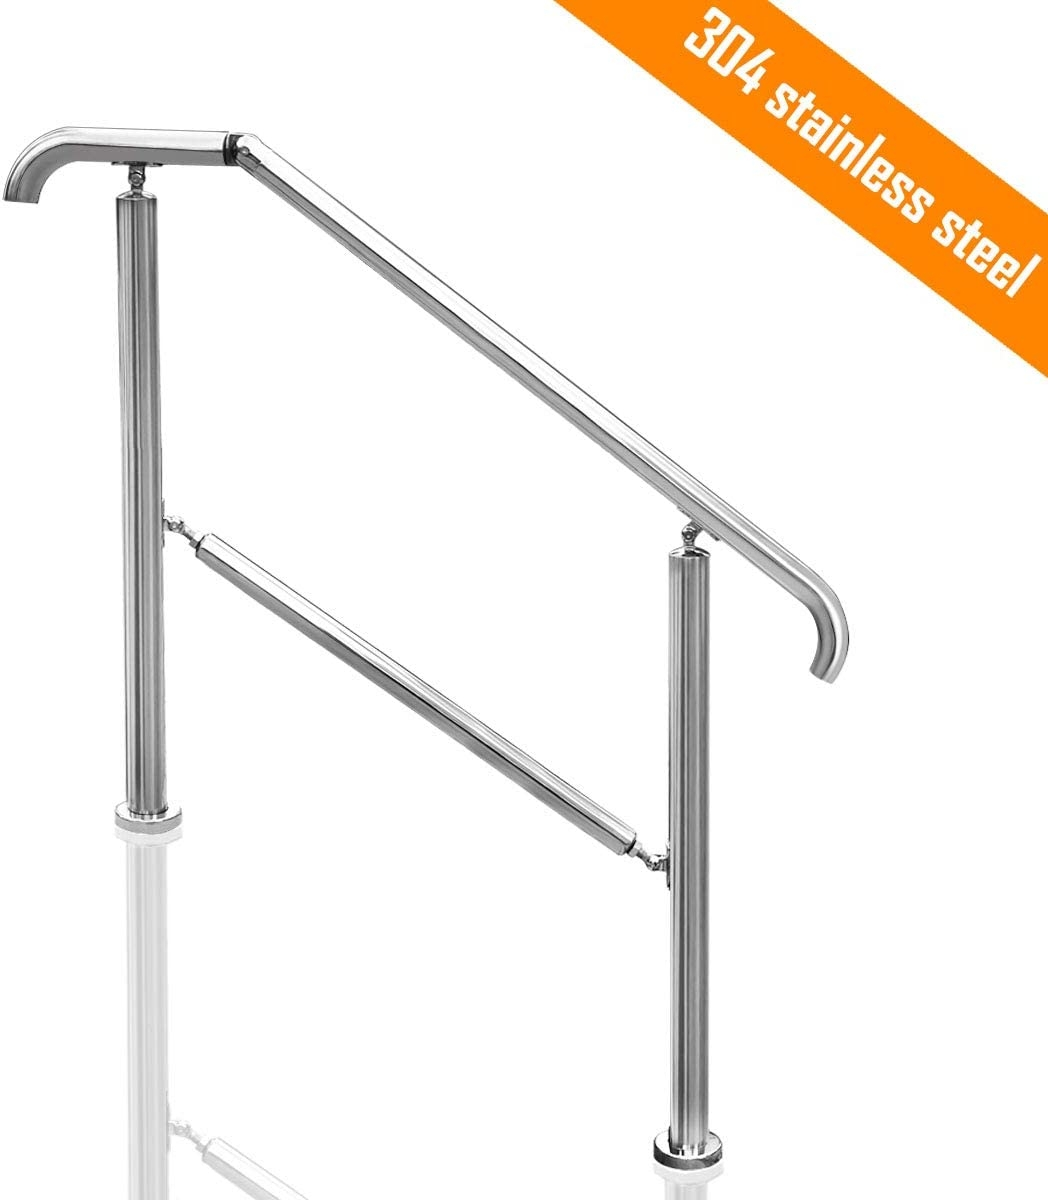 Transitional Handrail Stainless Steel Fits Level Surface And 1To 5 | Outdoor Railings For Steps | Exterior | Outside | Residential | Staircase | Interior